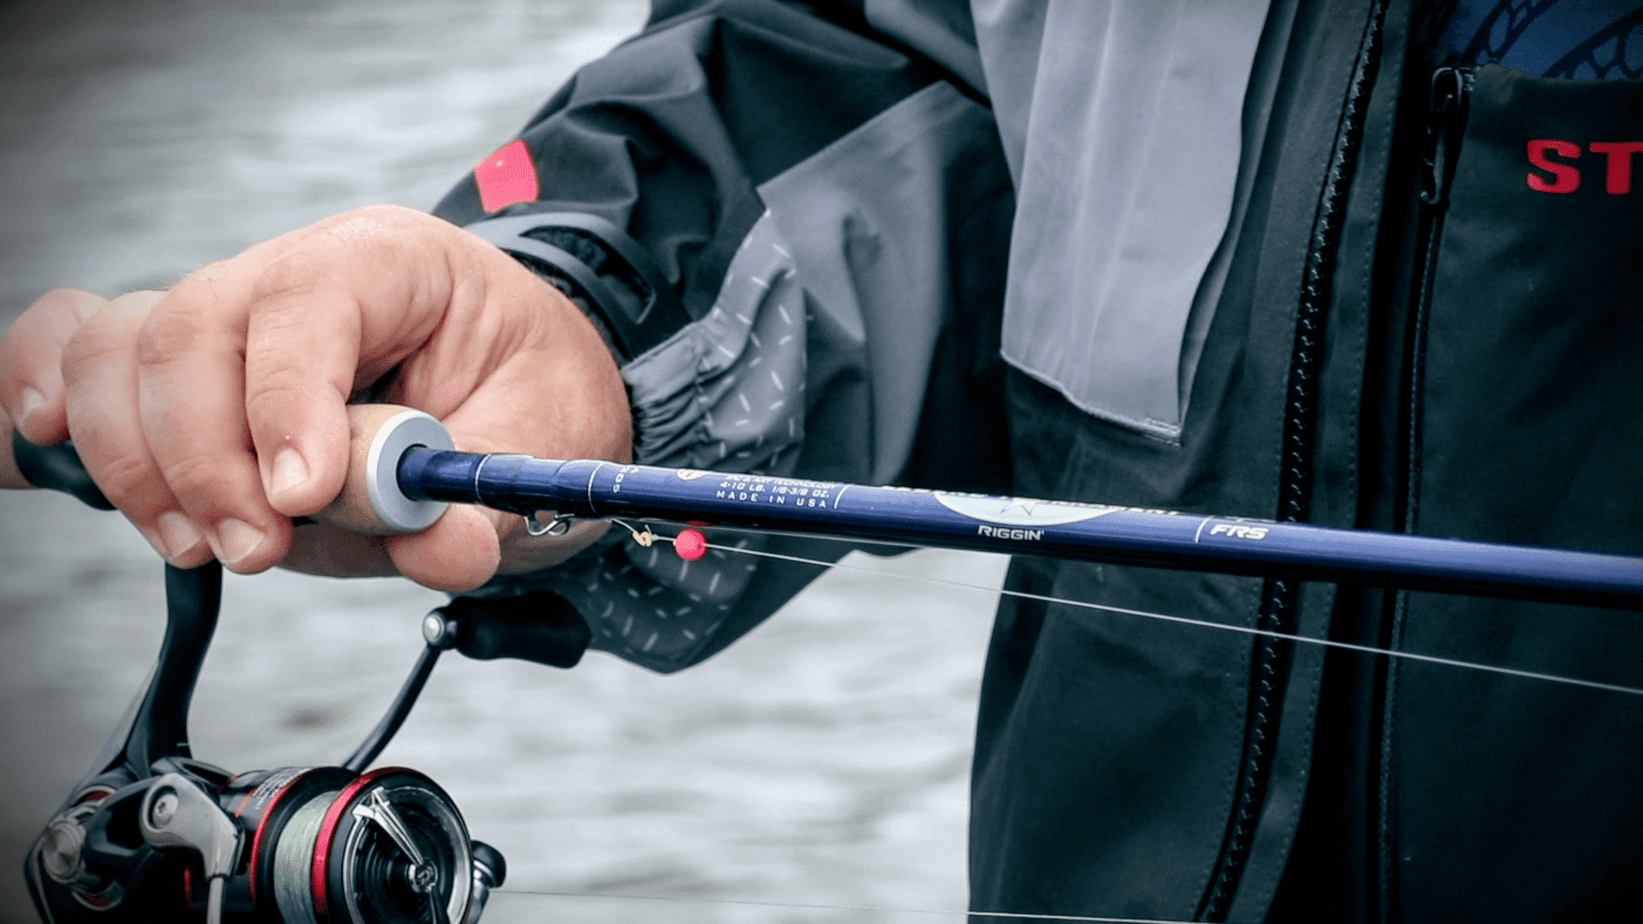 THE RIGHT FISHING ROD AND REEL FOR THE PRESENTATION